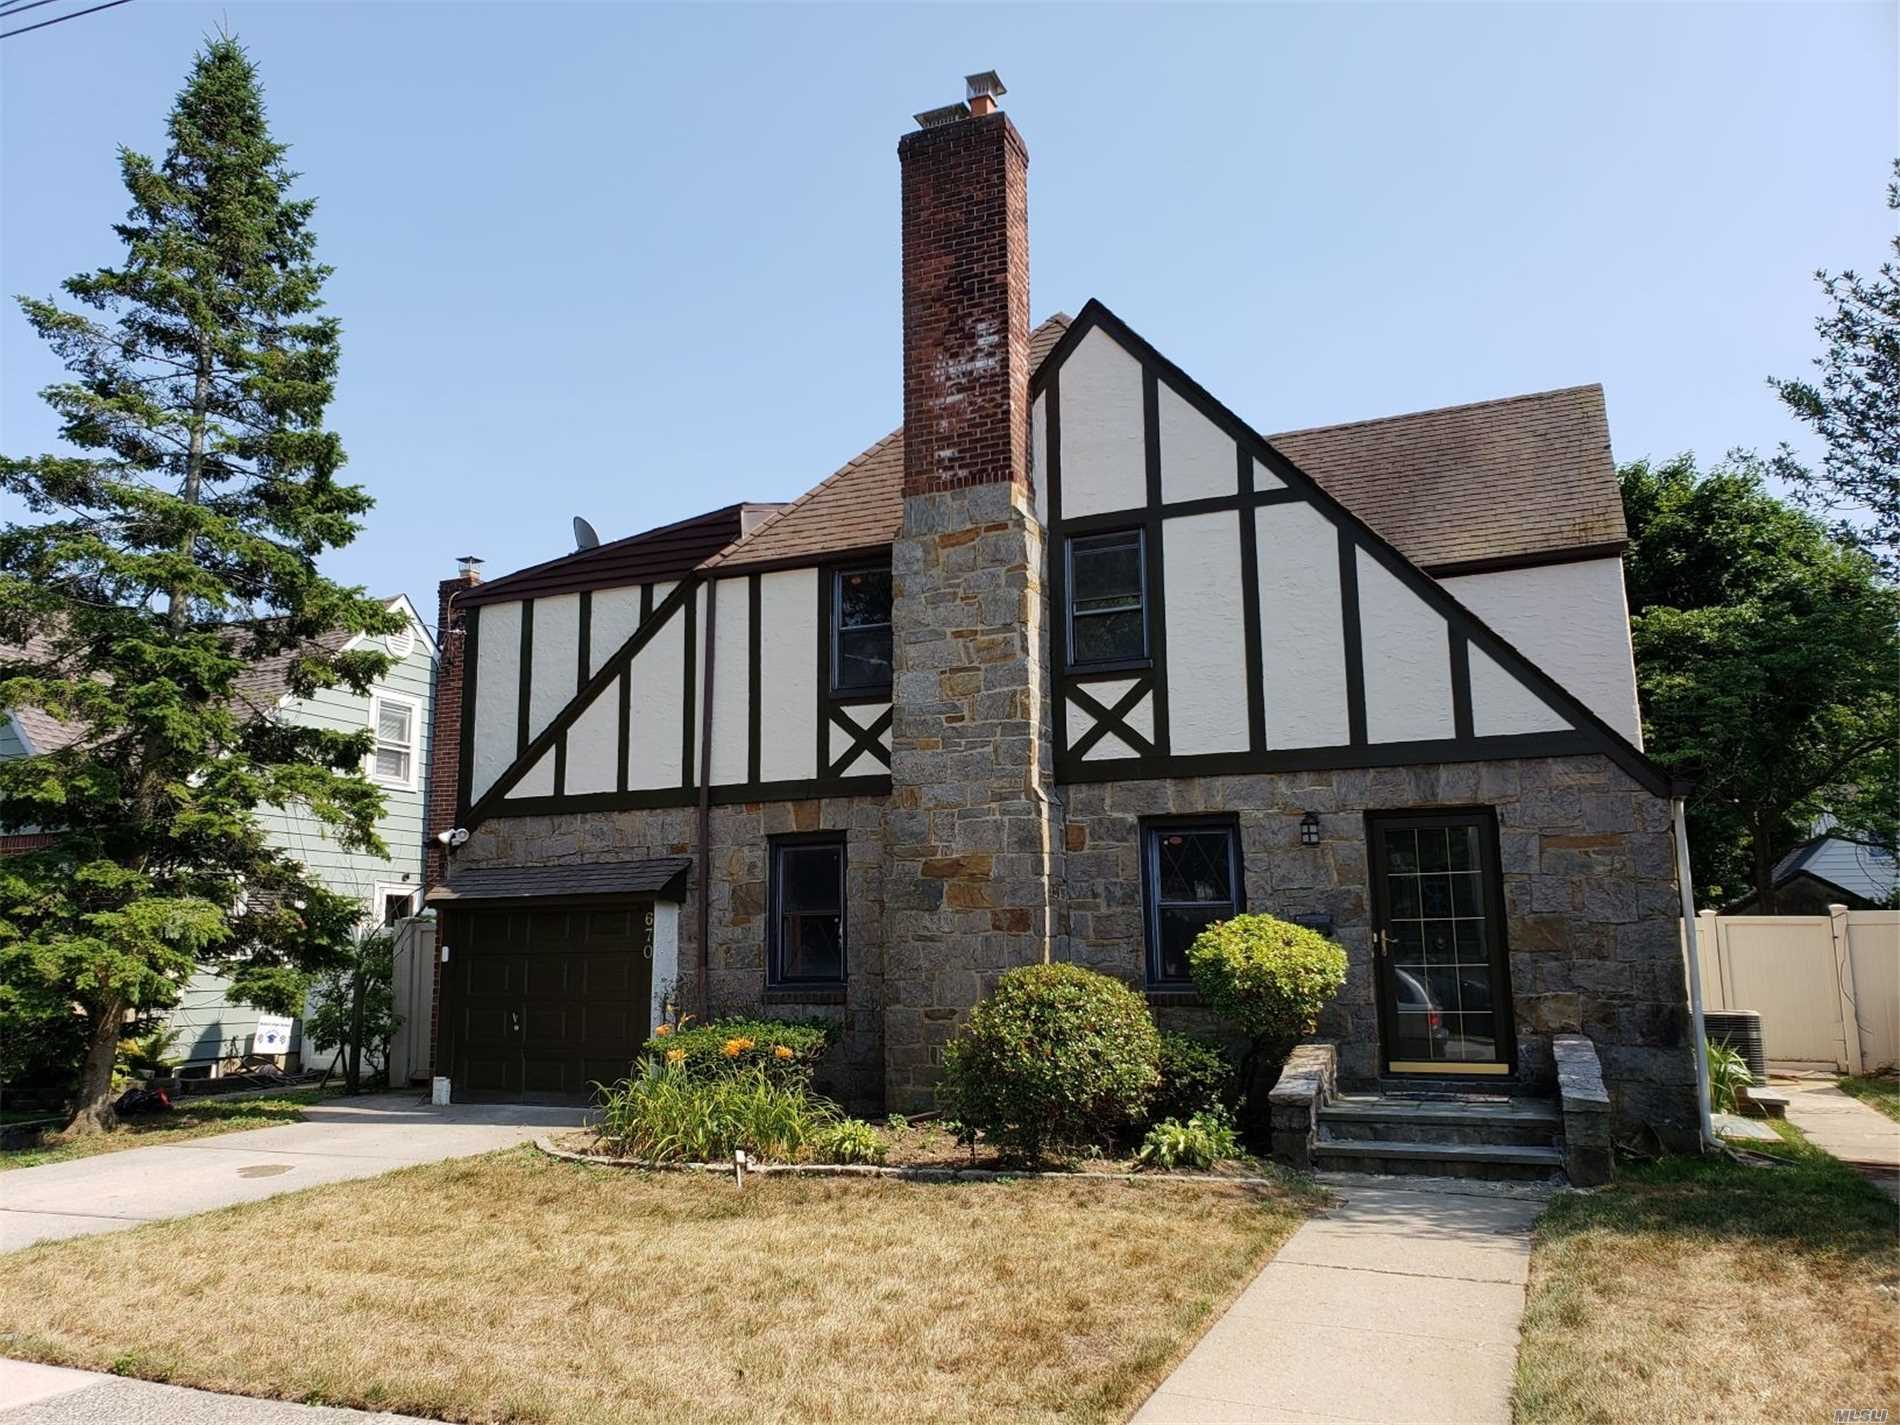 Large Tudor On 55X100 Lot. Detached With Spacious Fenced Backyard. Fully Renovated In 2018. Hardwood Floors, Porcelain Tile In Kitchen And Bathrooms, Designer Kitchen With Granite Countertops And Stainless Steel Appliances. 3 Bedrooms, 2, 5 Baths, Finished Basement And Much More. Ready To Move In!